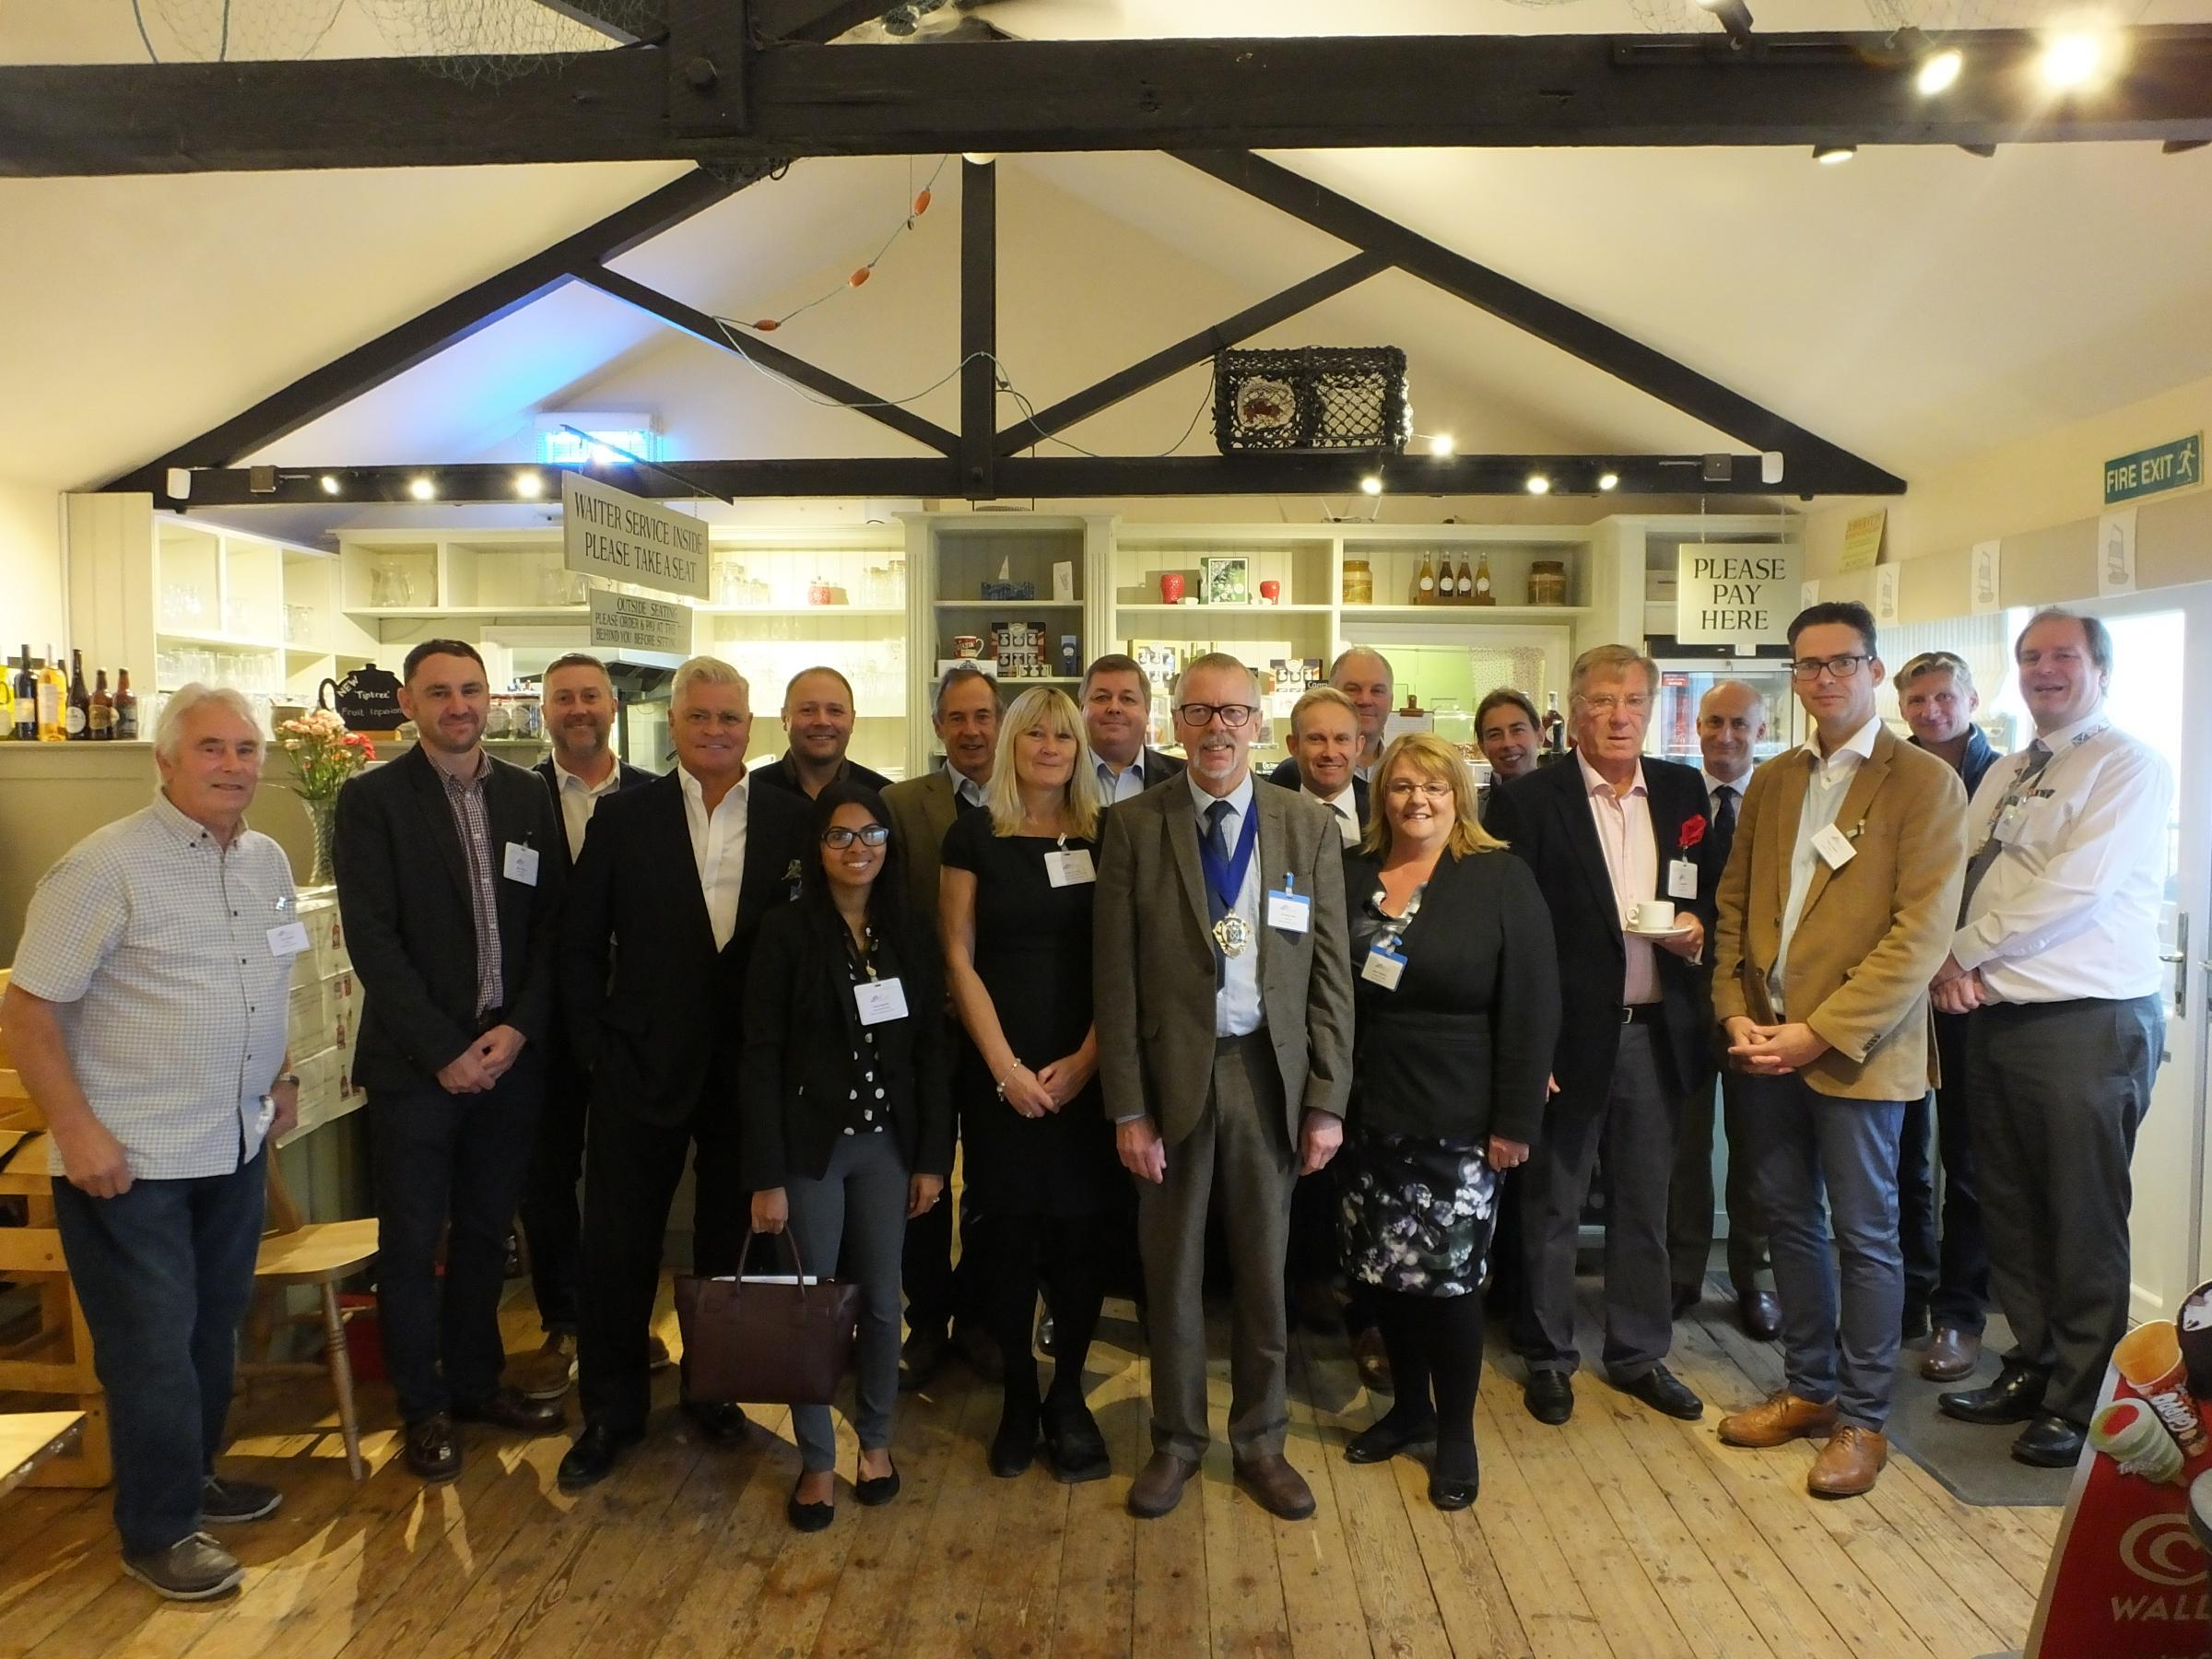 BREAKFAST MEETING: Chairman of Maldon District Council Henry Bass with business leaders at The Lock, Heybridge